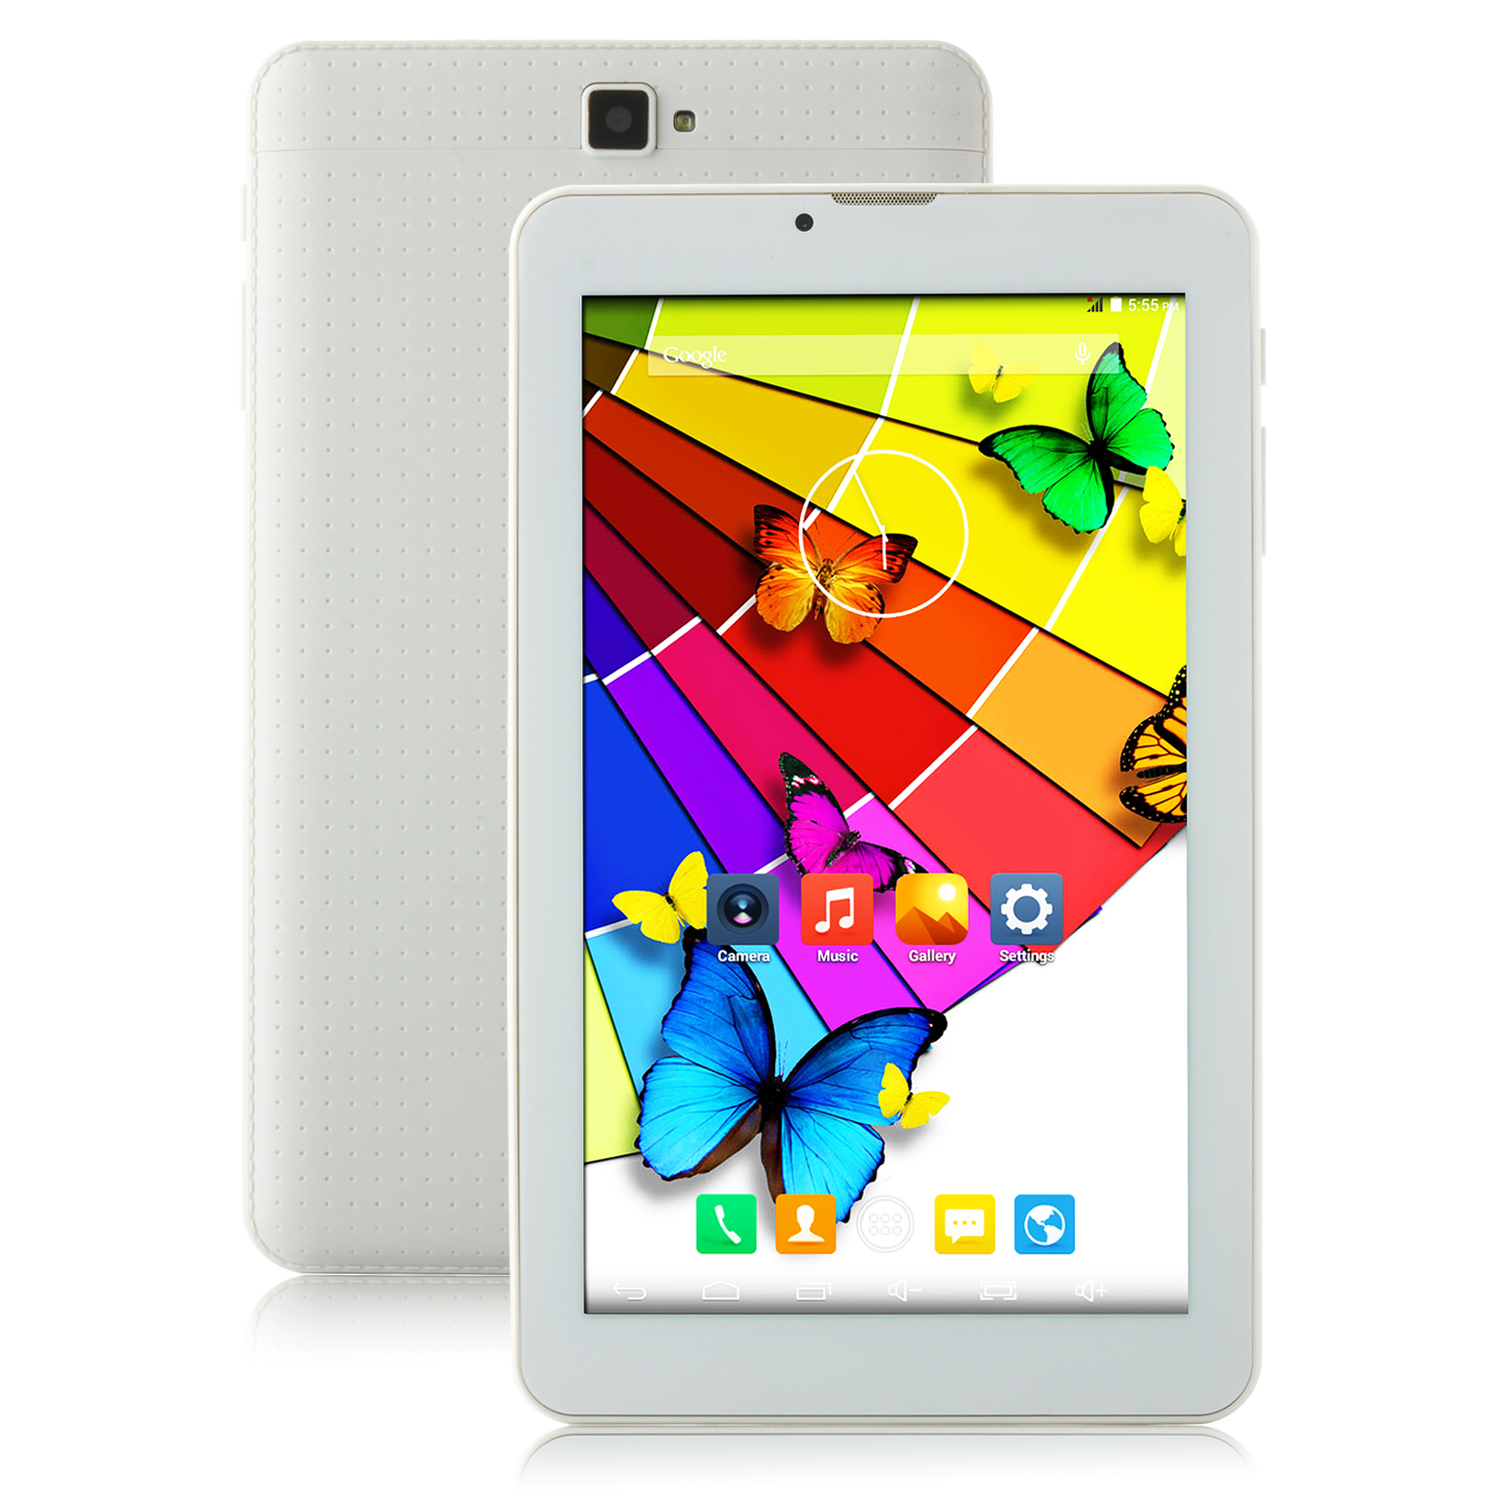 HUU H718 Tablet PC MTK8312 Dual Core 7.0 Inch Android 4.4 IPS Screen 1GB 8GB White